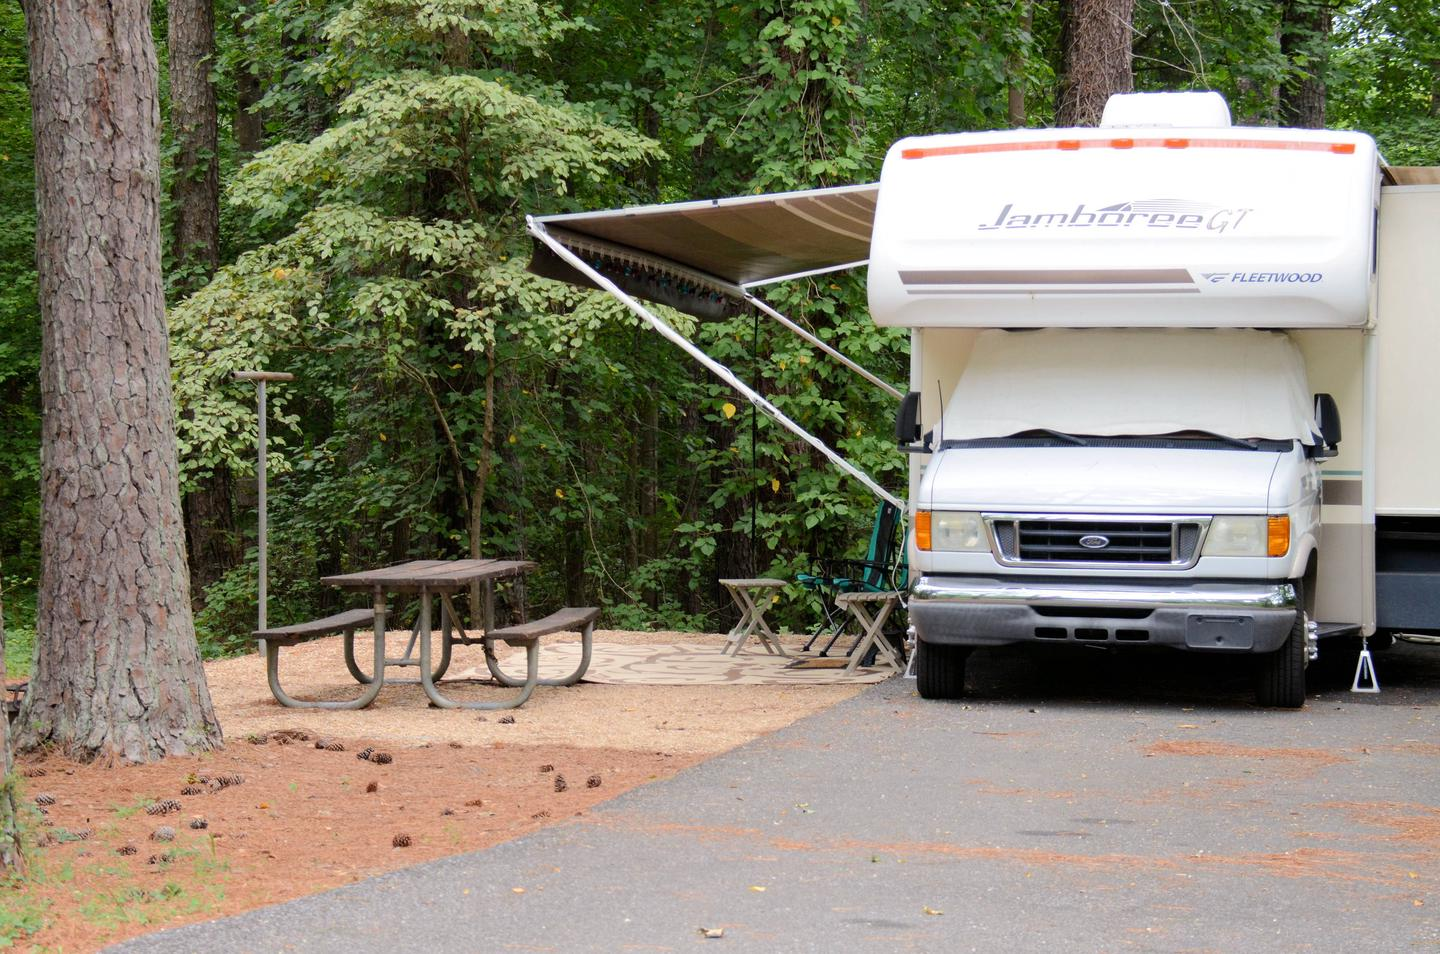 Awning-side clearance, campsite view.Payne Campground, campsite 60.